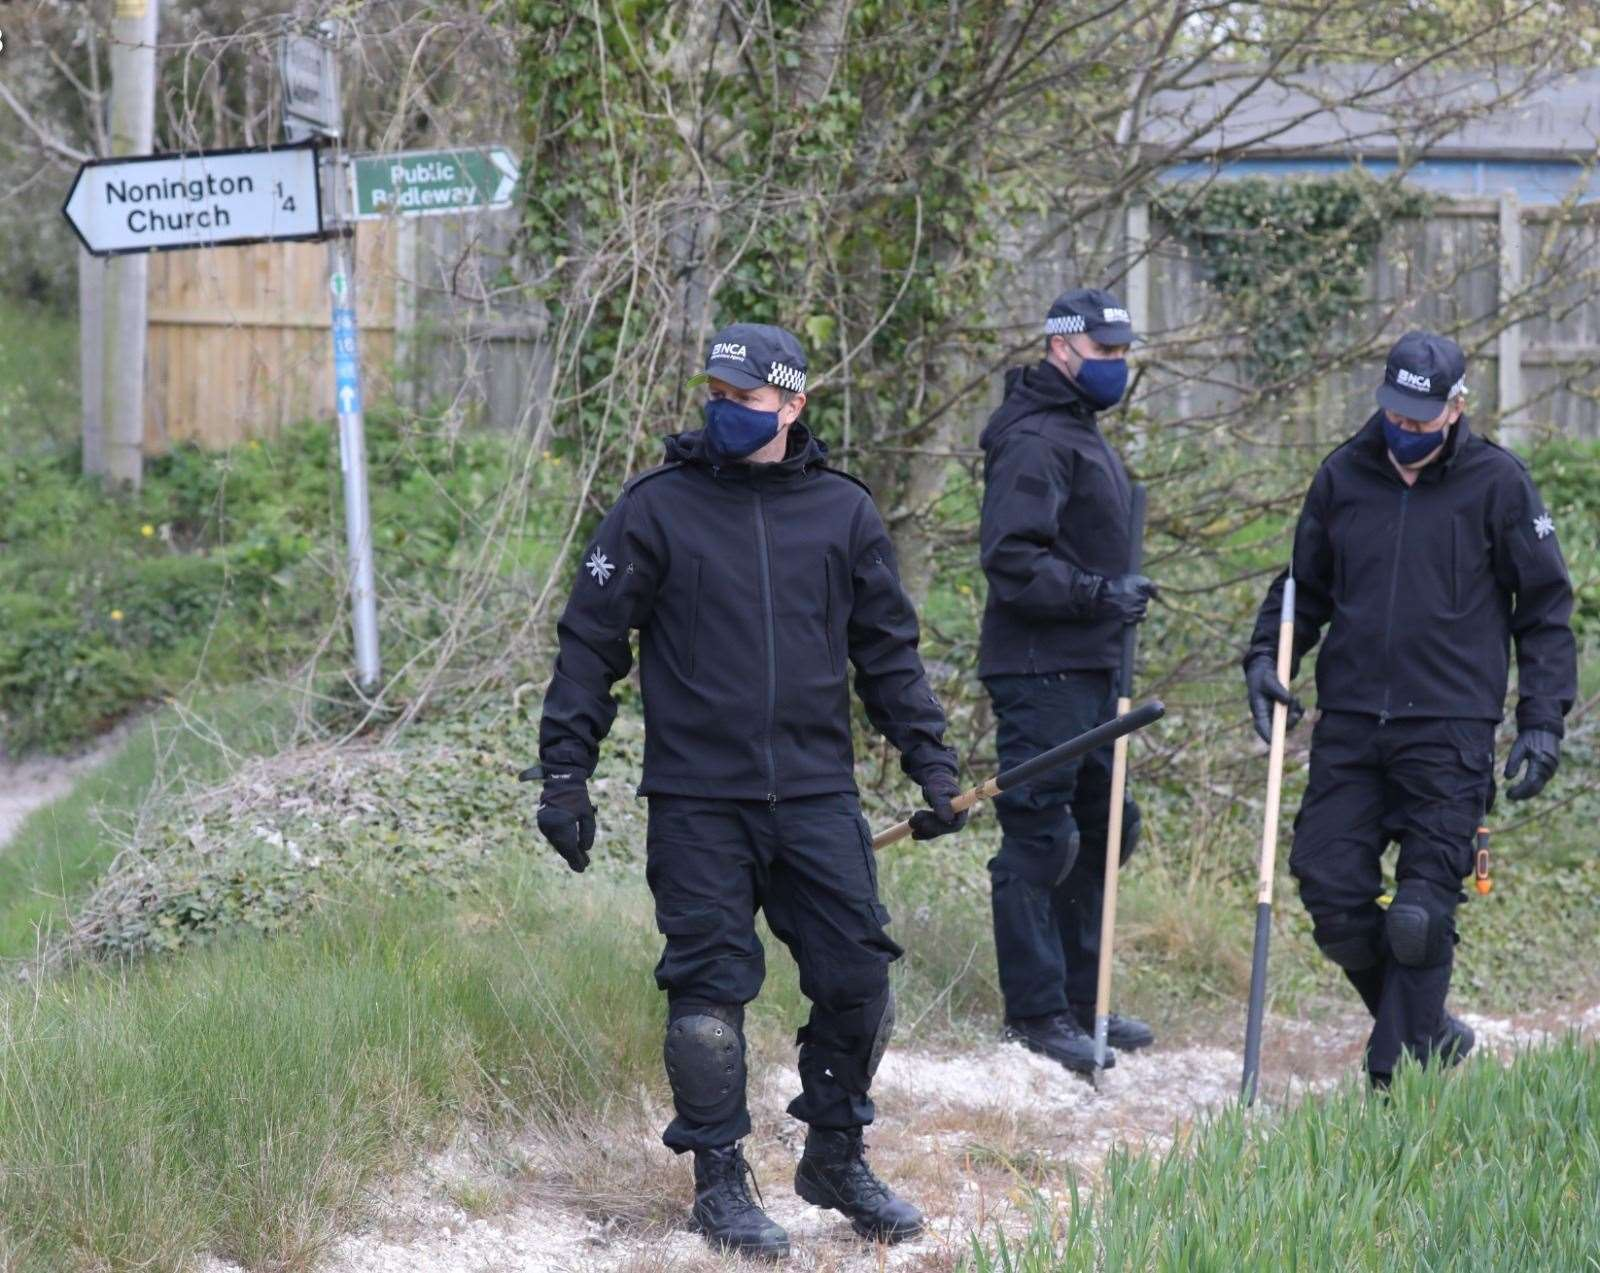 Police searching for clues in the hunt for the killer of Julia James. Picture UKNIP